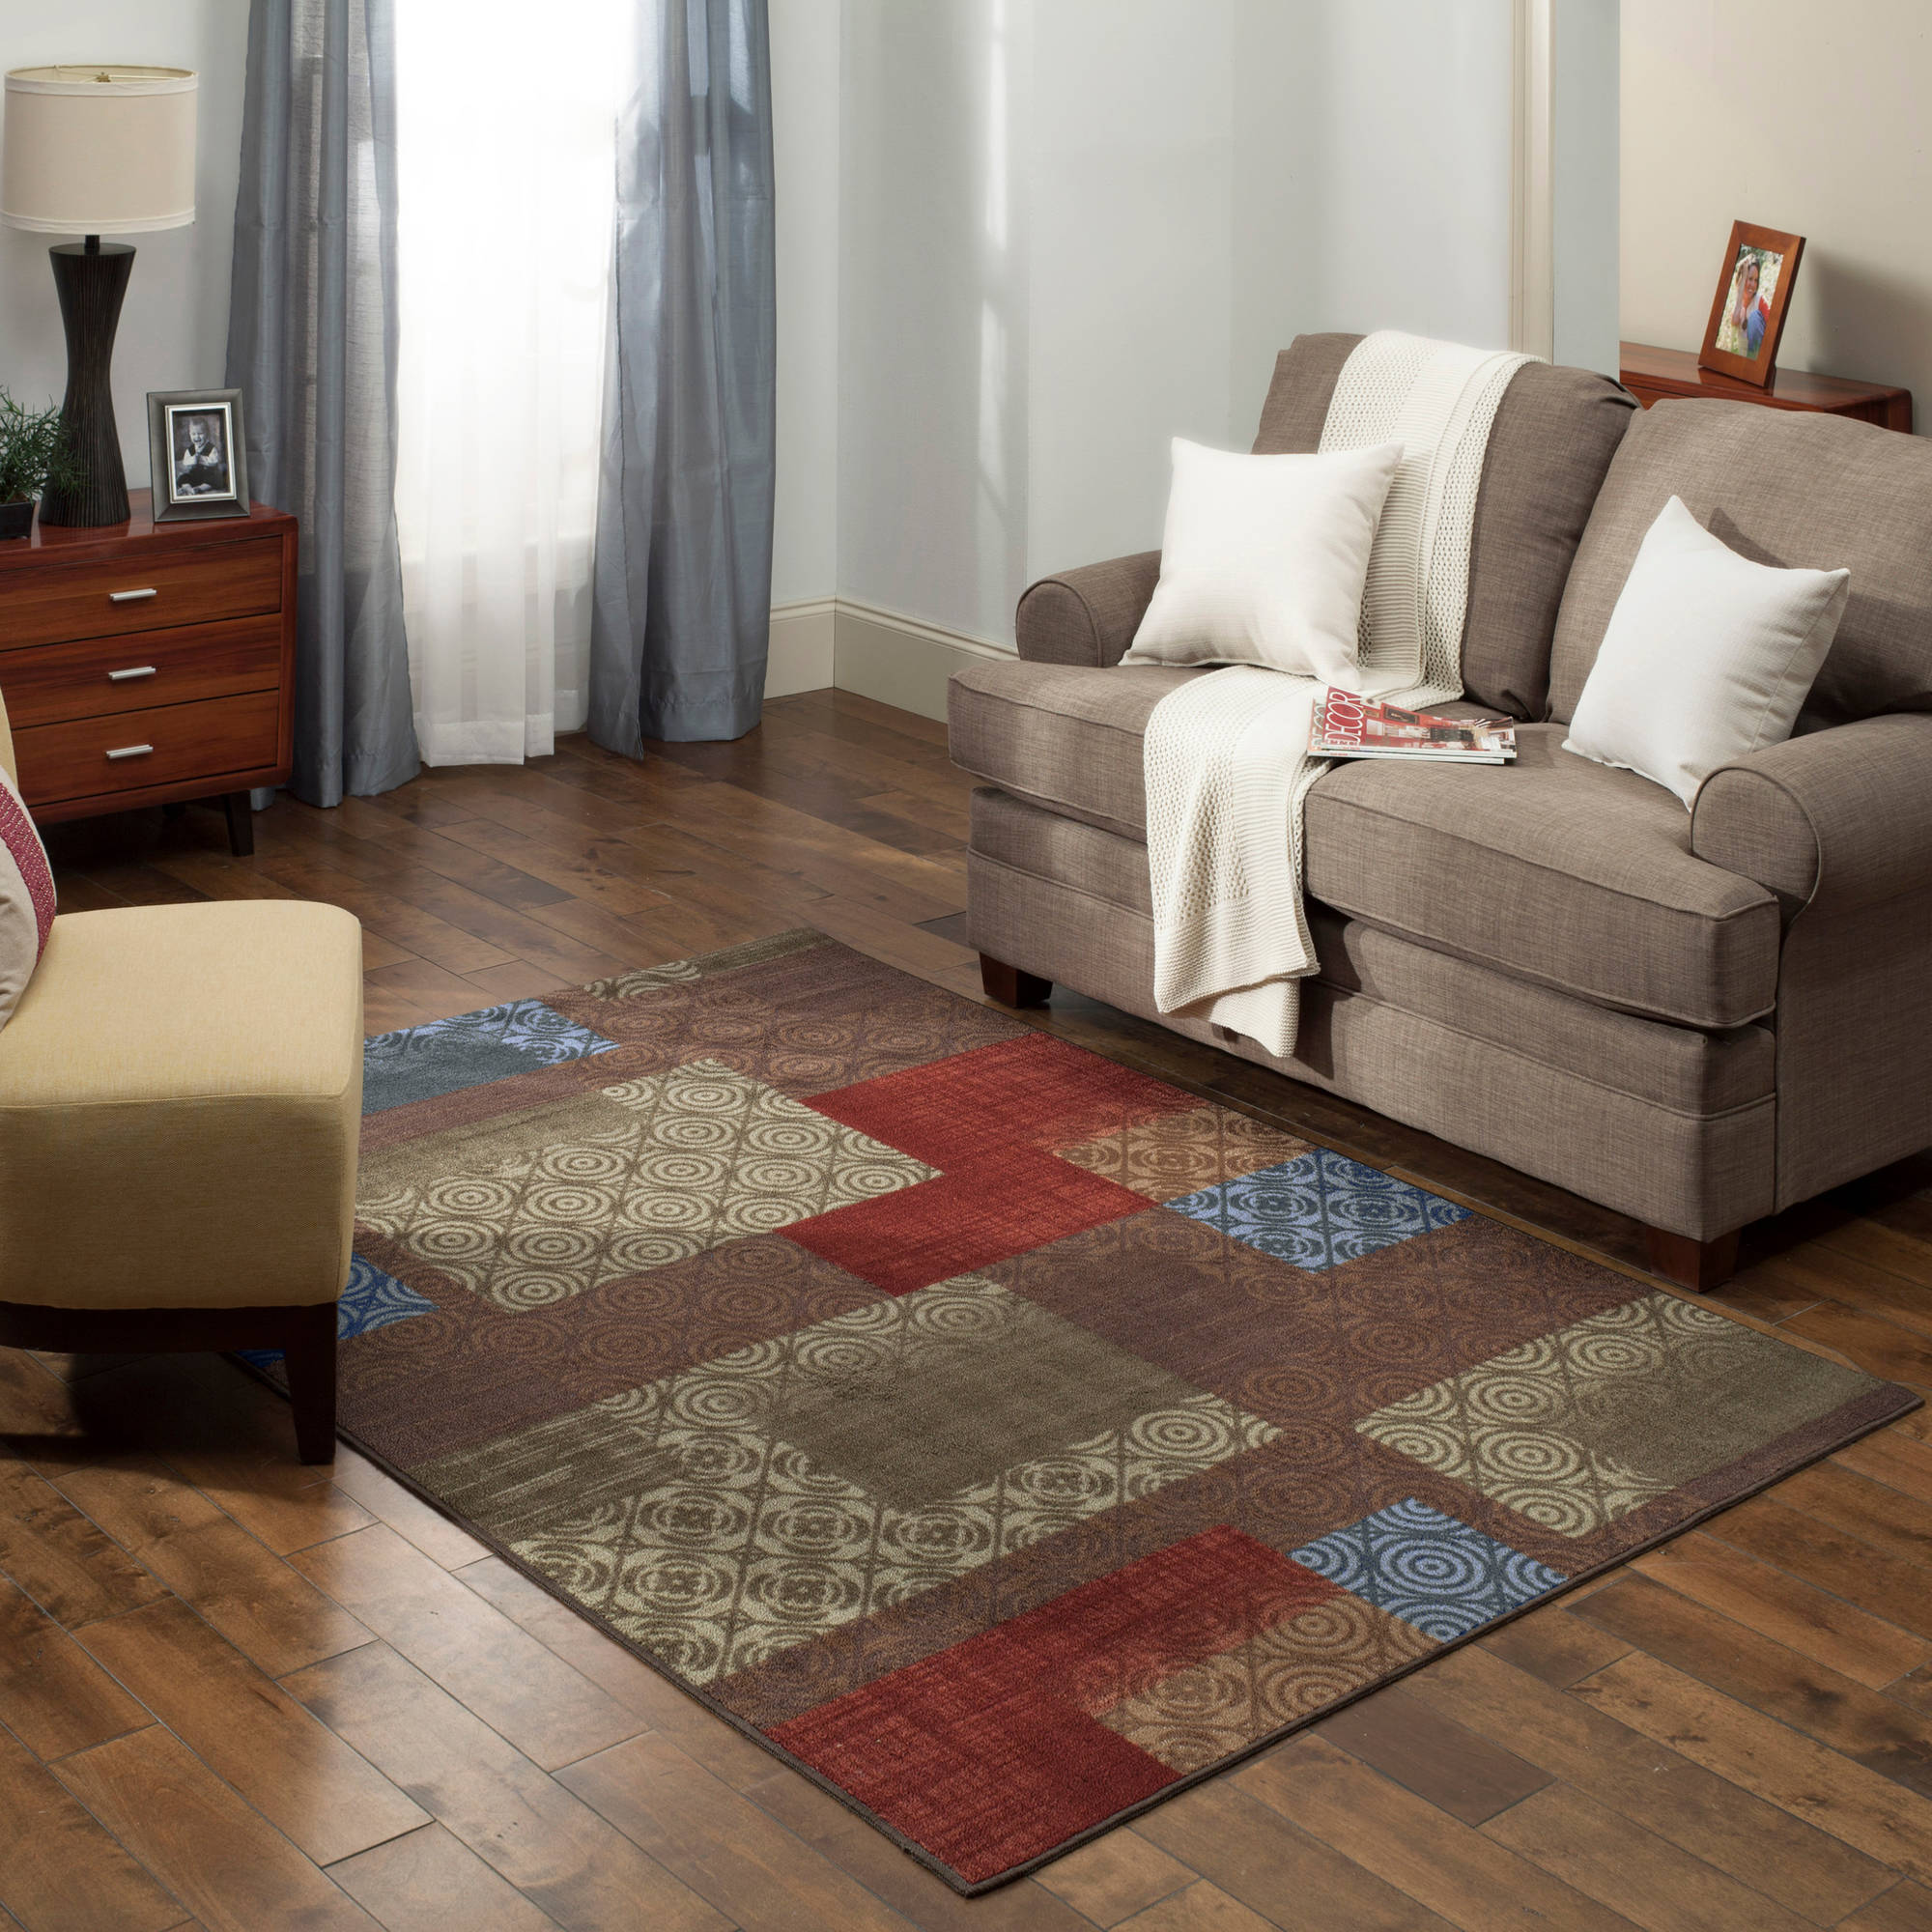 Mainstays Payton Nylon Area Rugs Or Runner   Walmart.com